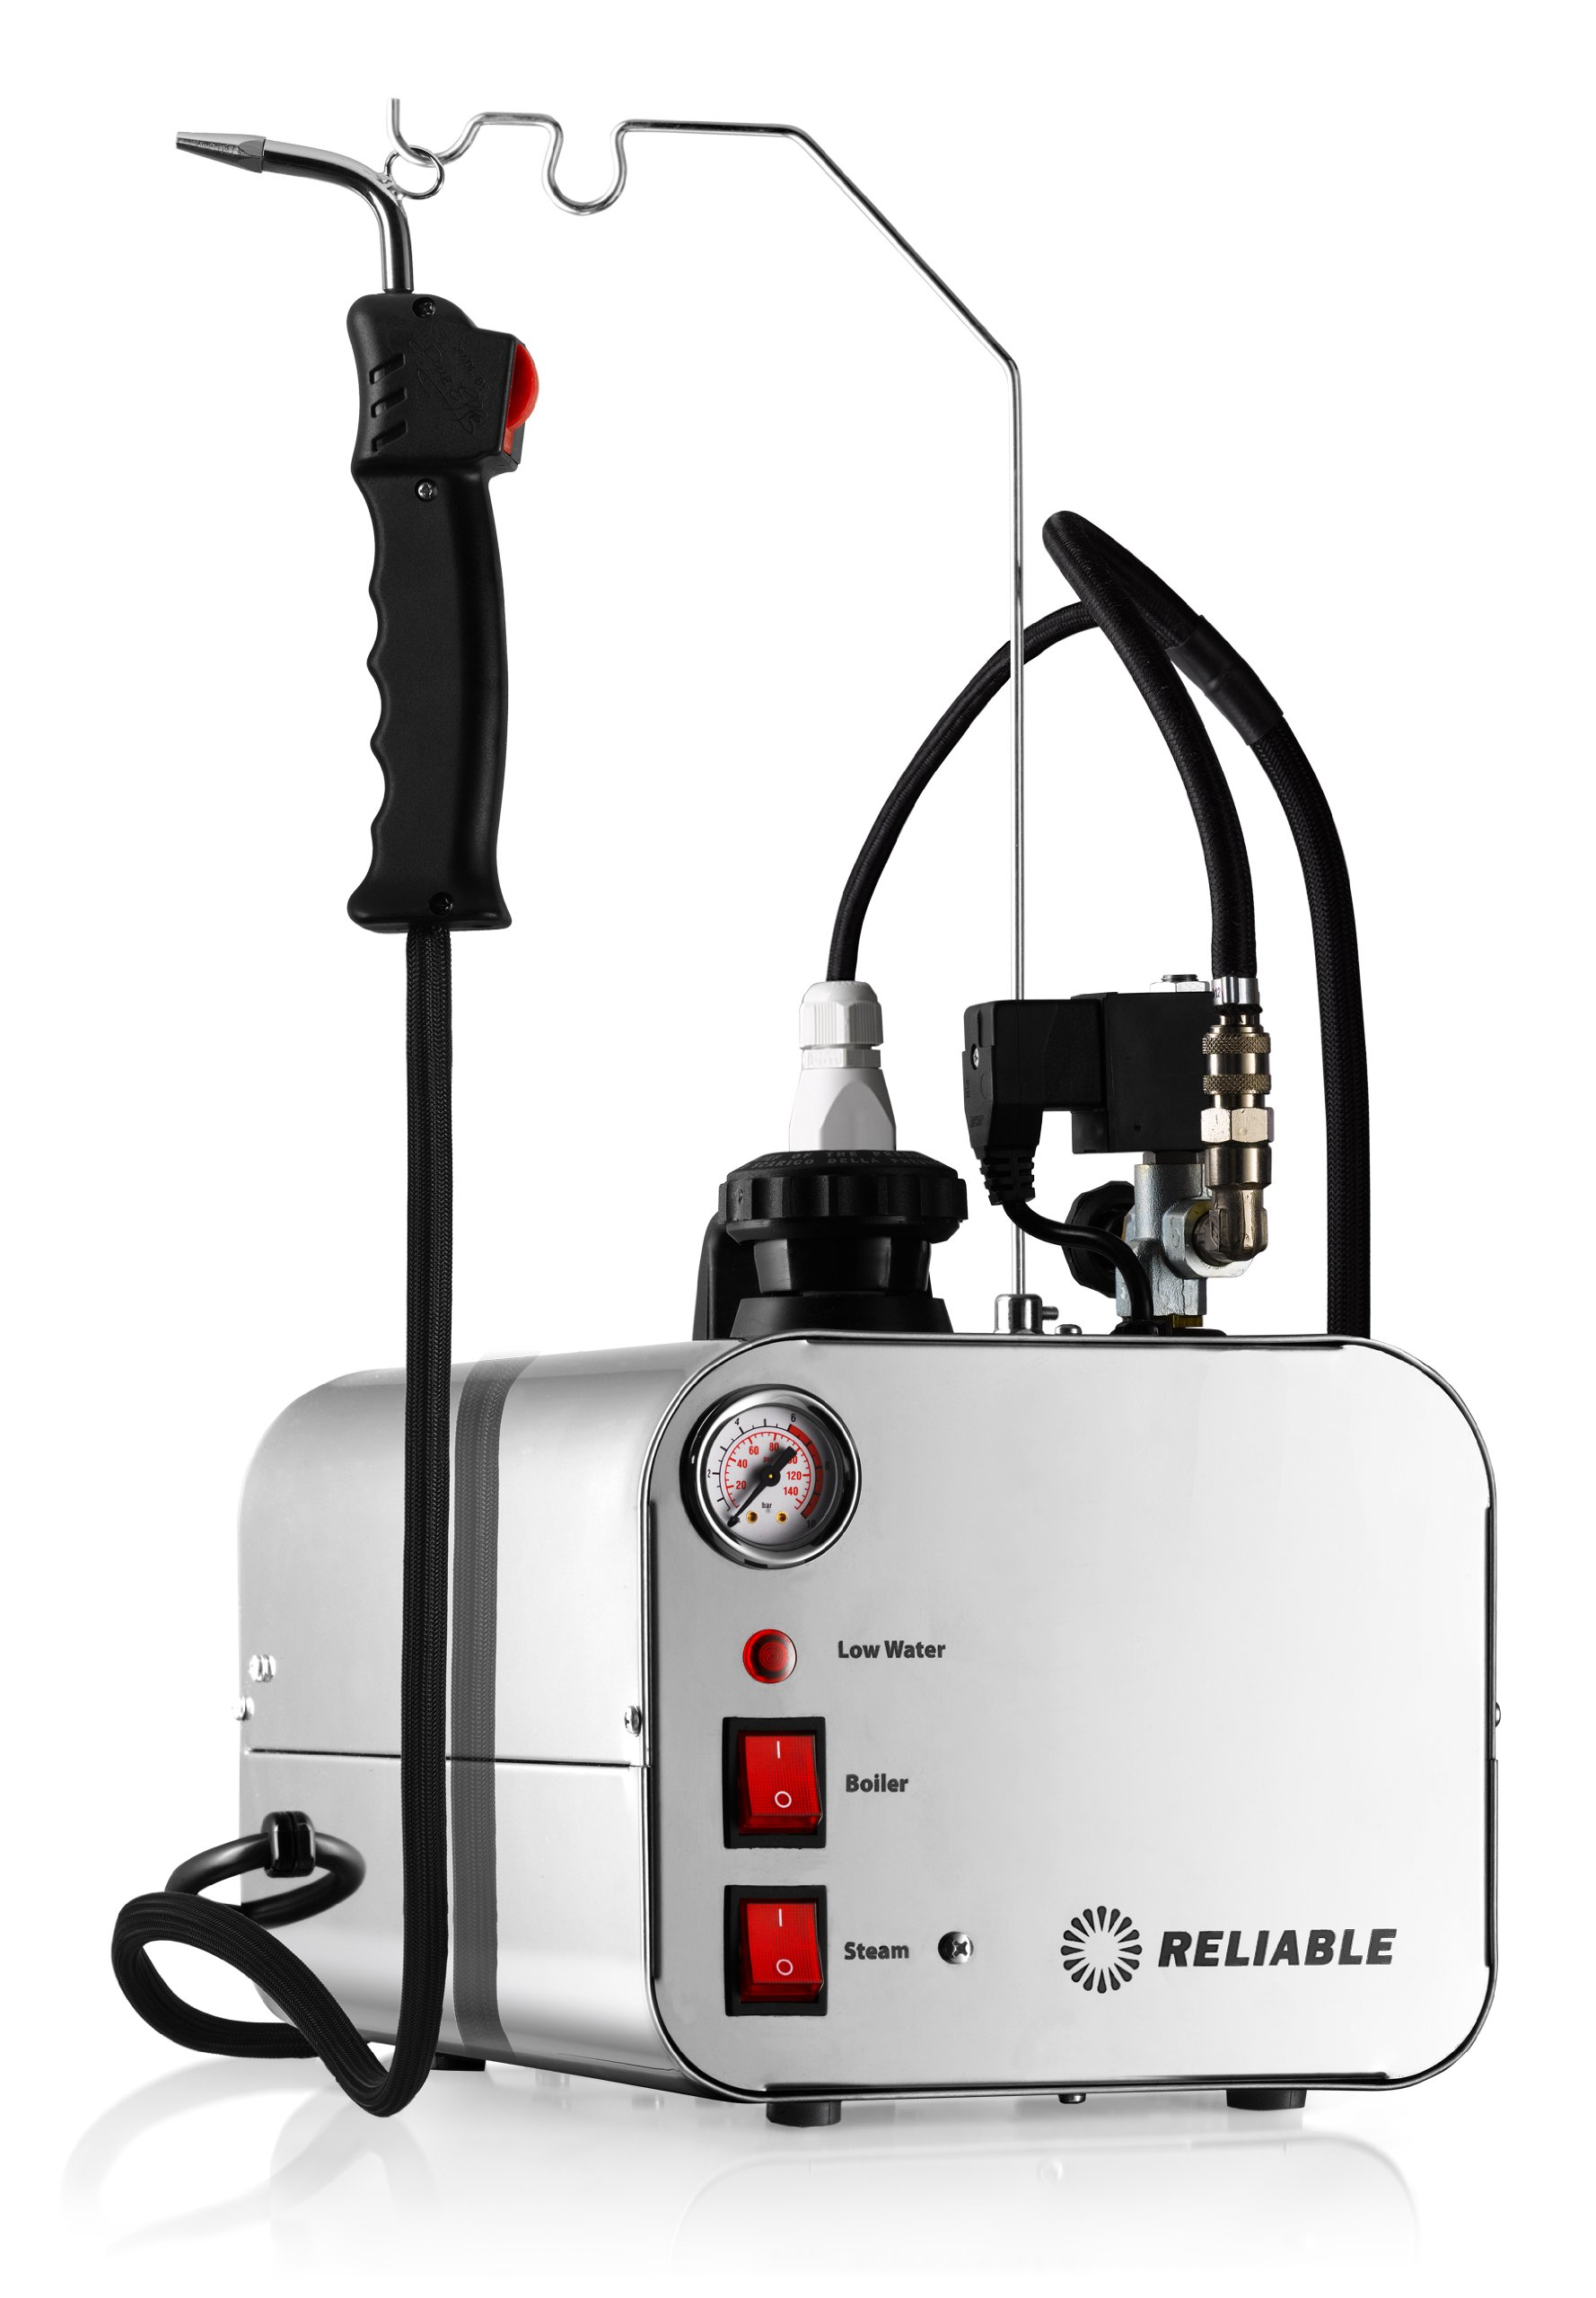 Reliable 5000CD Dental Steam Cleaner 50 PSI Pressure 2.5L Water Capacity, 12-Gauge Heavy-Duty Wiring, Stainless Steel Tank, Up-to 4 Hours of Continuous Steam, Copper Heating Element, 8' Steam Hose